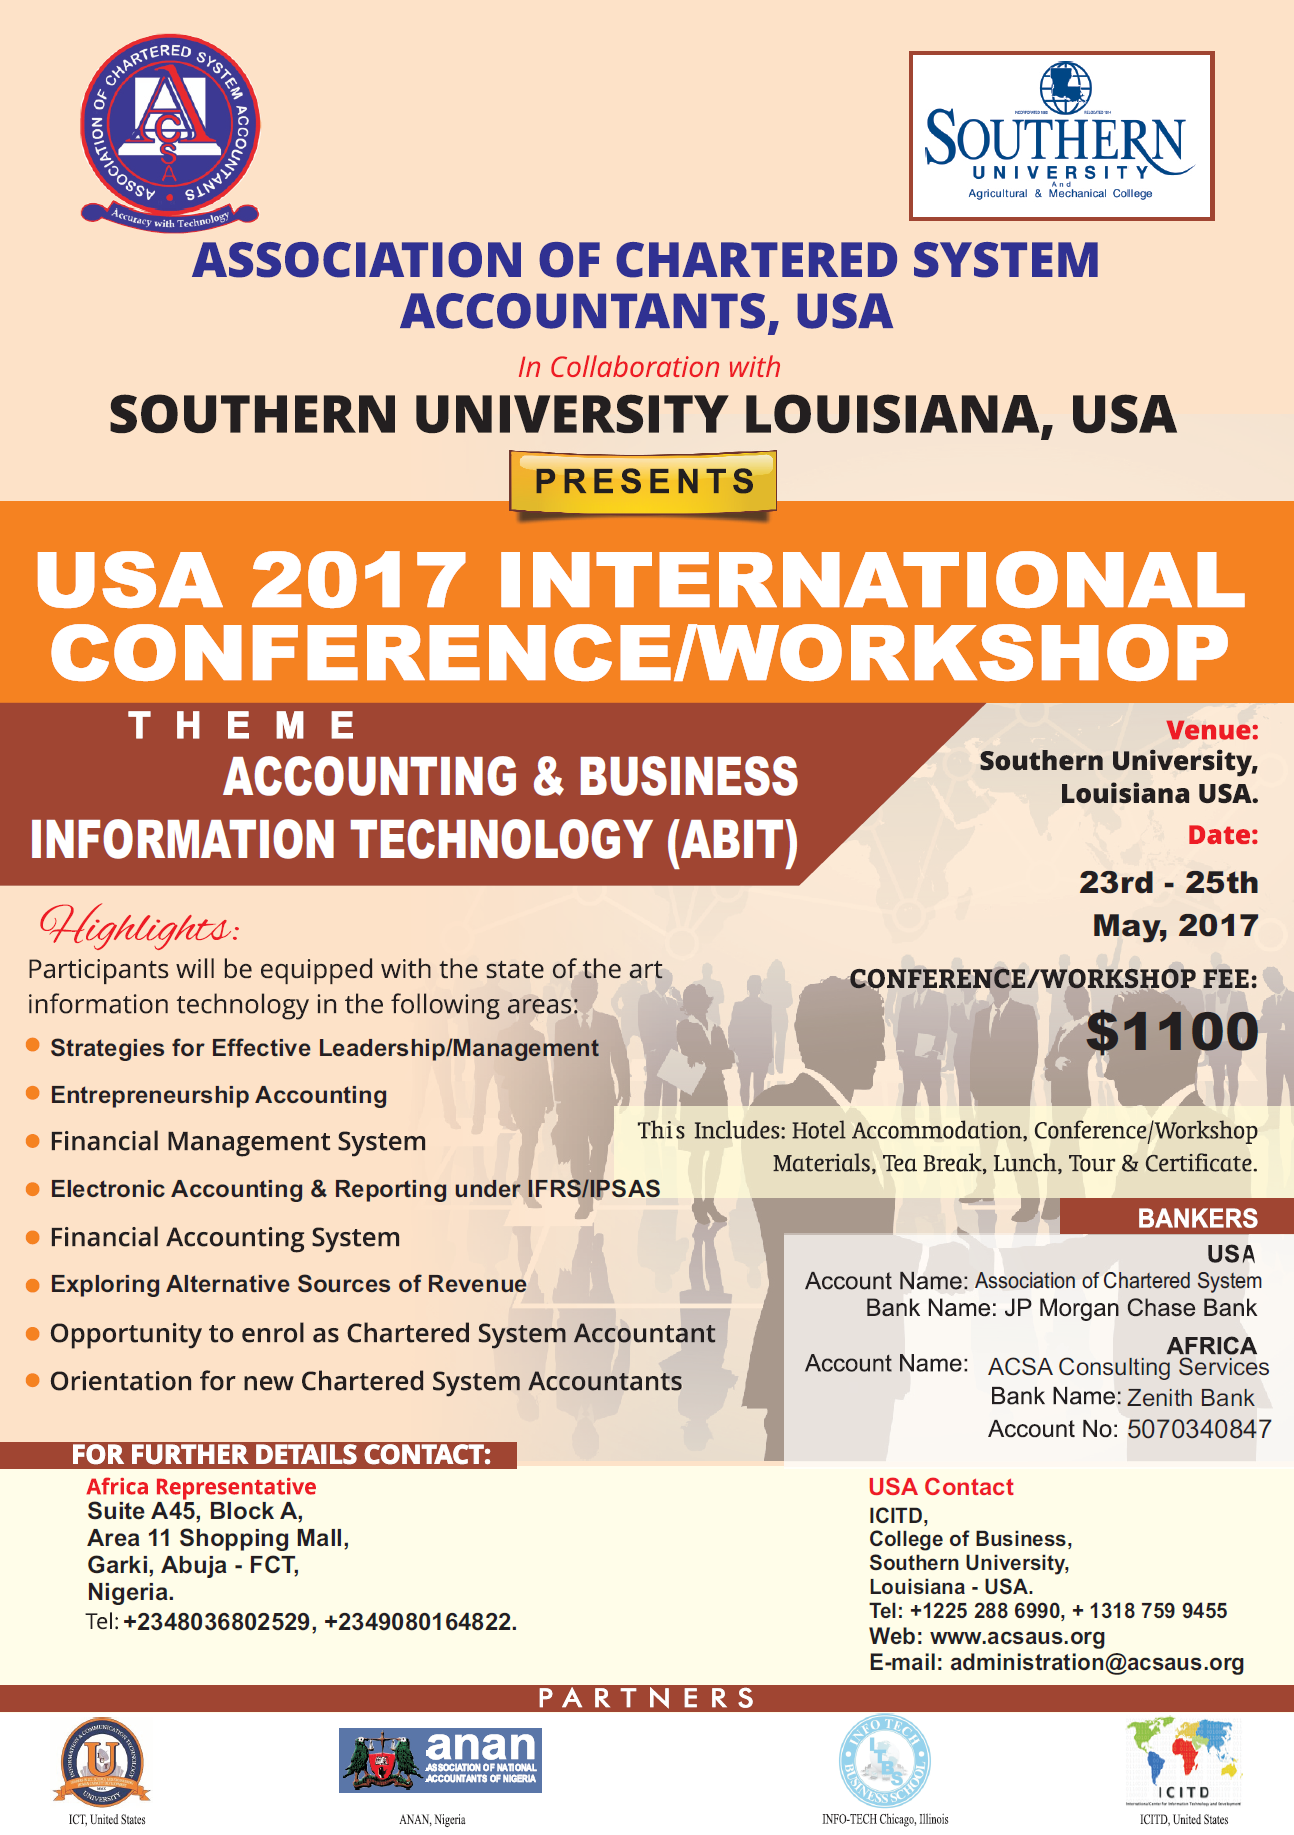 USA 2017 International Conference/Workshop